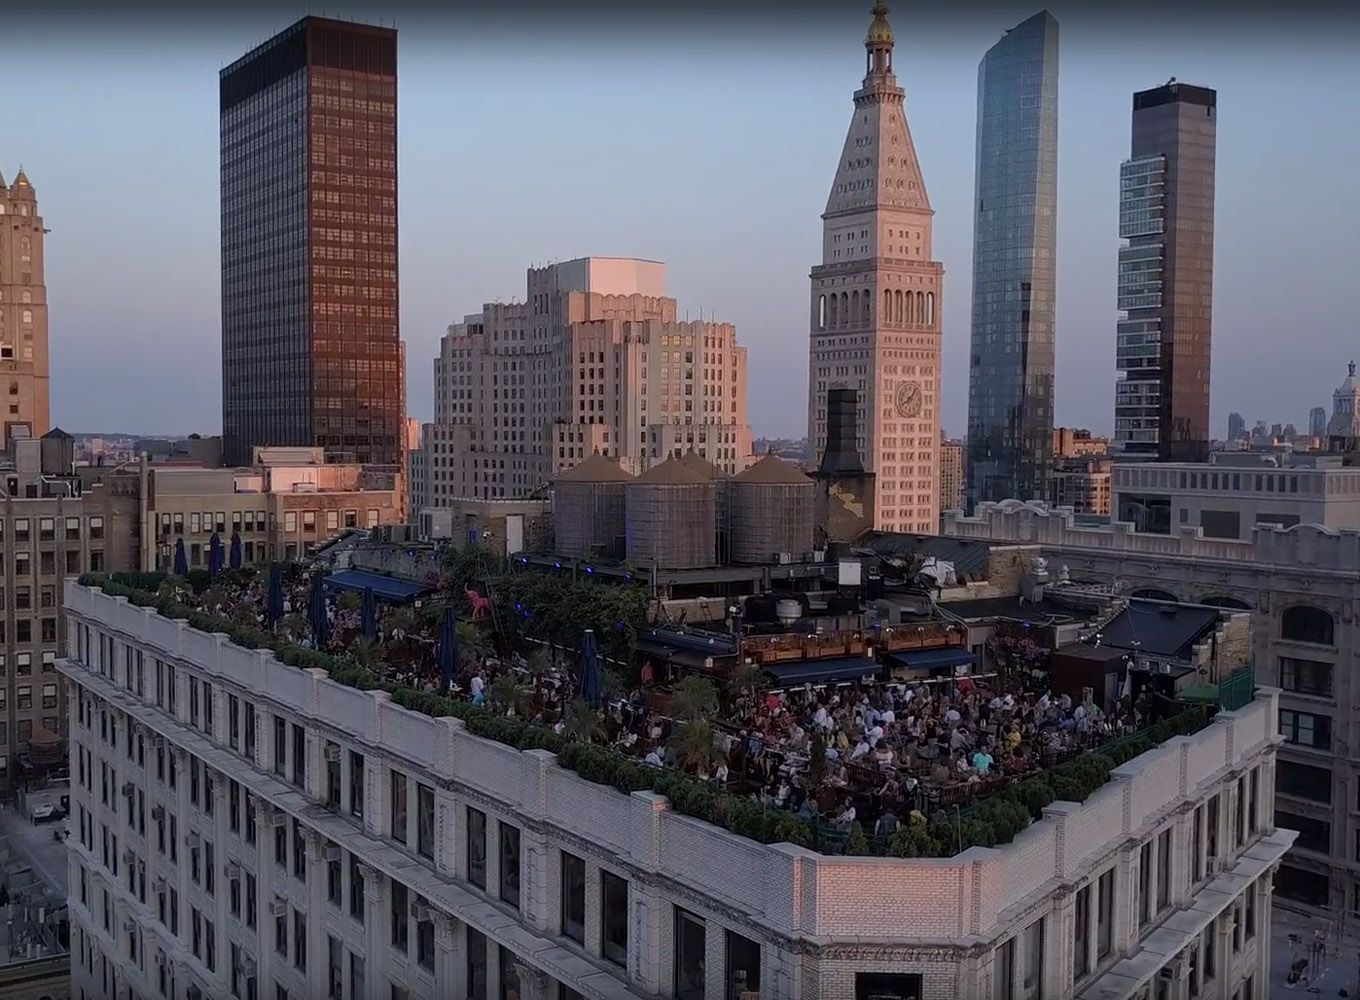 Venue Rooftop Bar Nyc Rooftop Bars Nyc Best Rooftop Bars Nyc